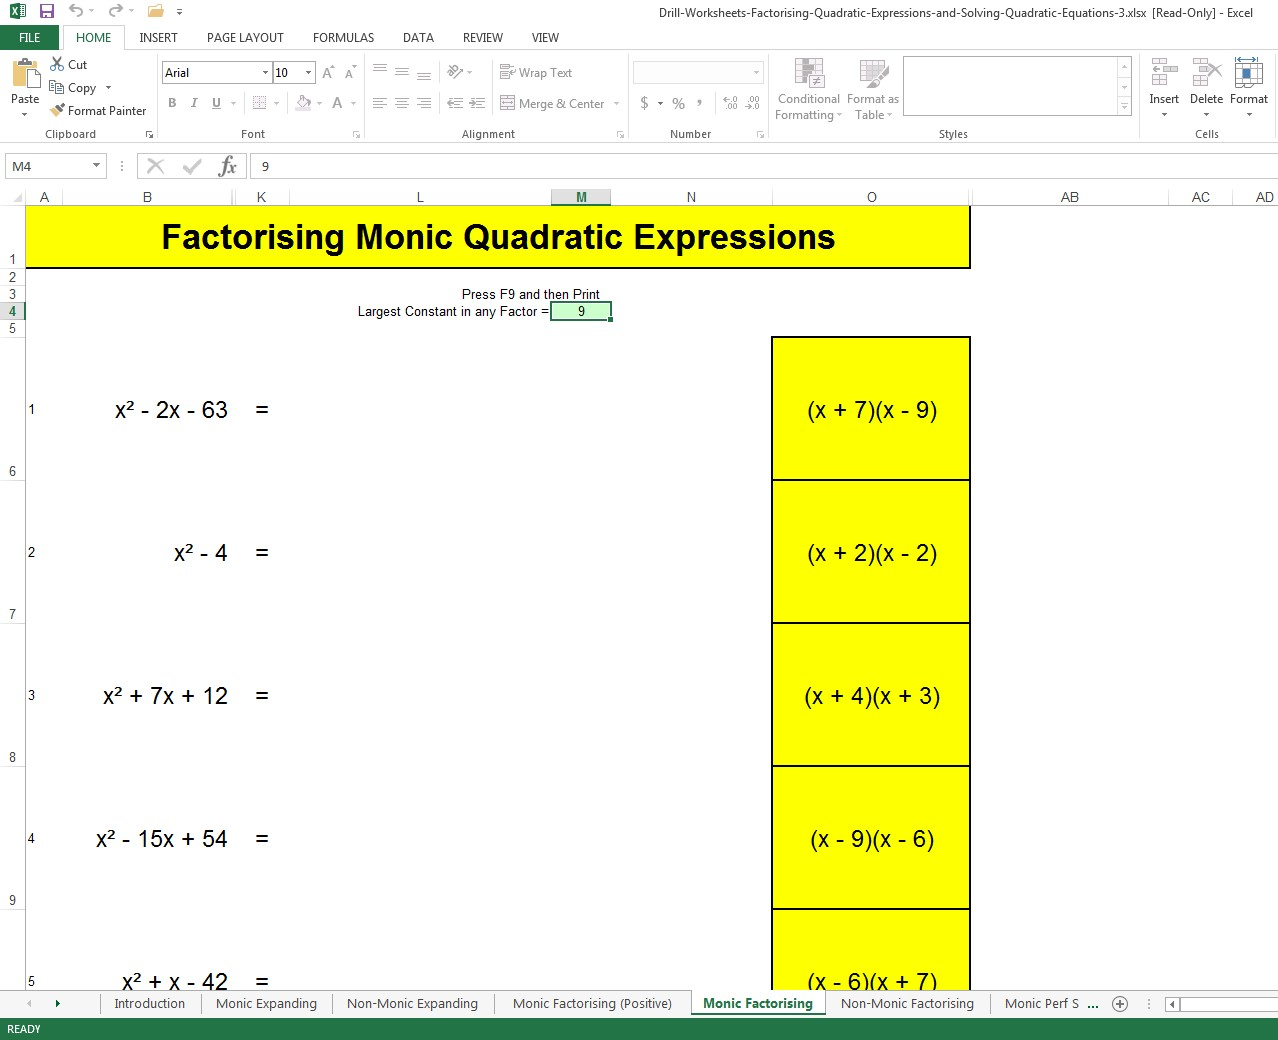 How To Factorise Quadratic Expressions And Solve Quadratic Equations